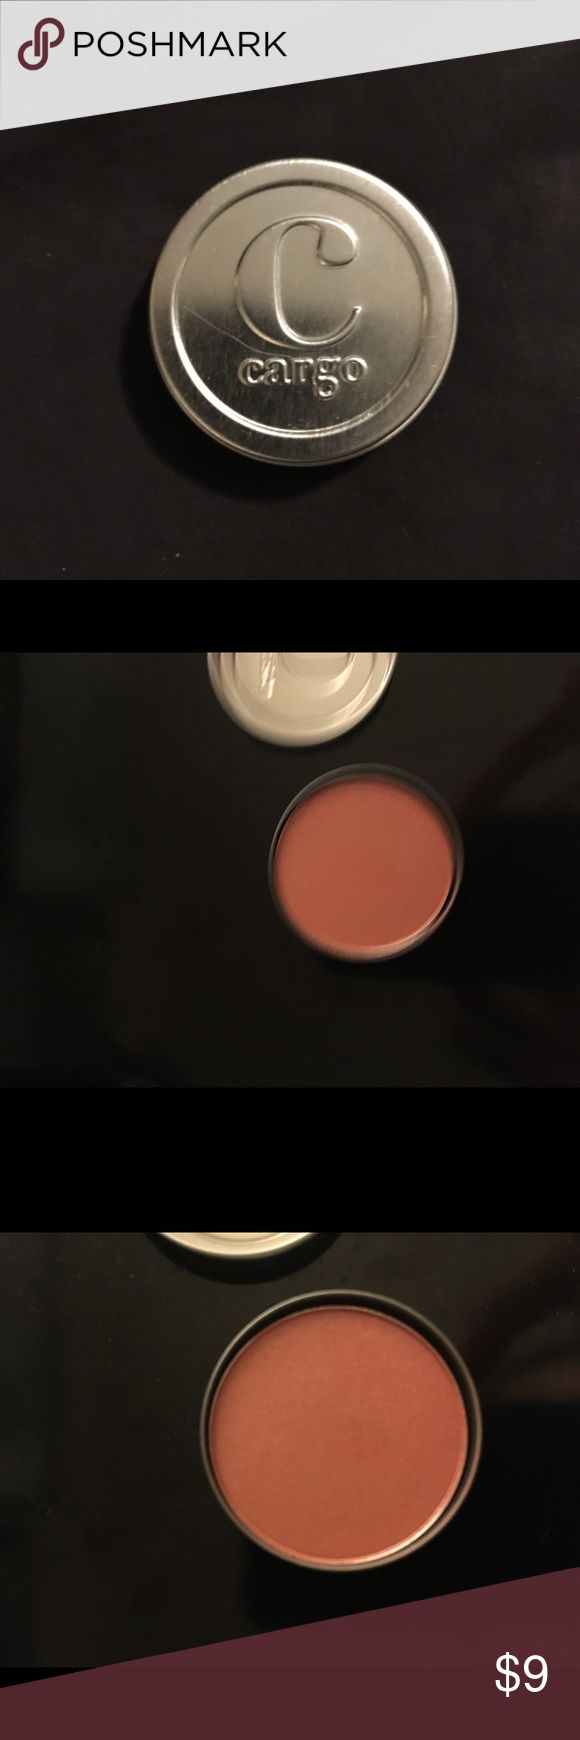 Brand New Cargo Cosmetics Los Cabos Blush For sale: brand new unused Cargo Cosmetics Los Cabos Blush.  The blush is water resistant and the size is 0.11 ounces. It's perfect for your purse or as a travel item. Cargo Cosmetics Makeup Blush